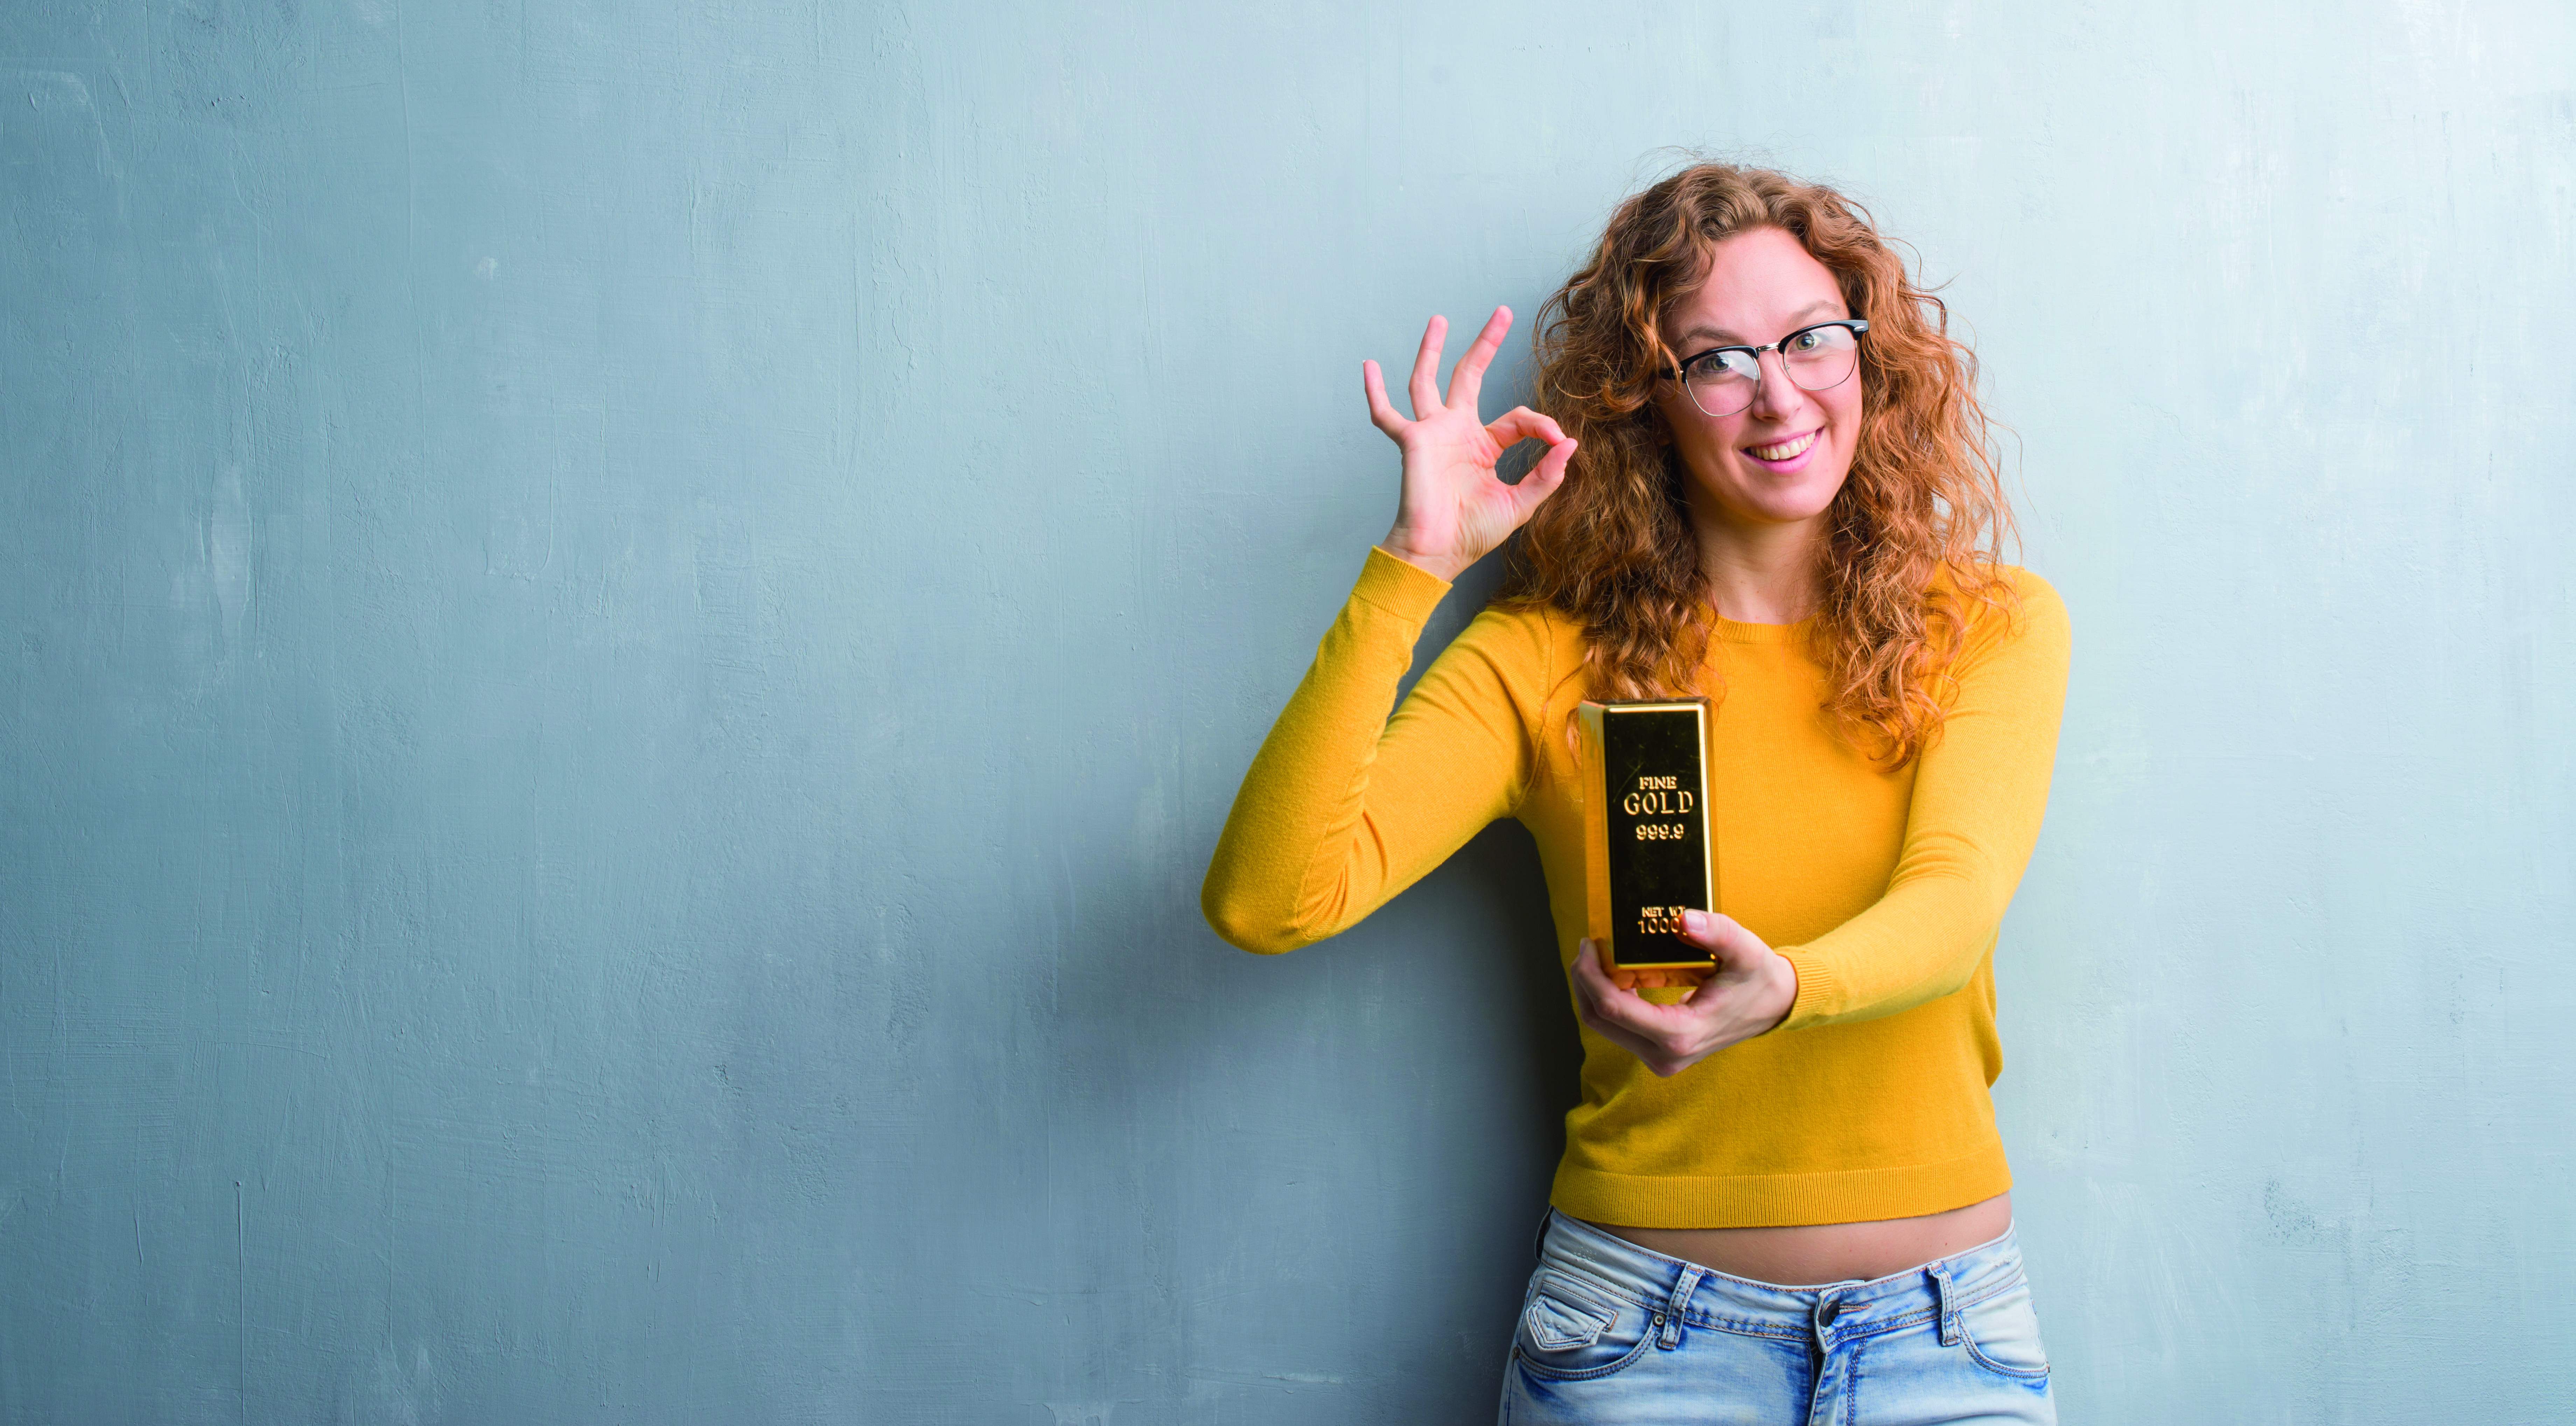 Young Redhead Woman Over Grey Grunge Wall Holding Gold Ingot Doing Ok Sign With Fingers, Excellent Symbol